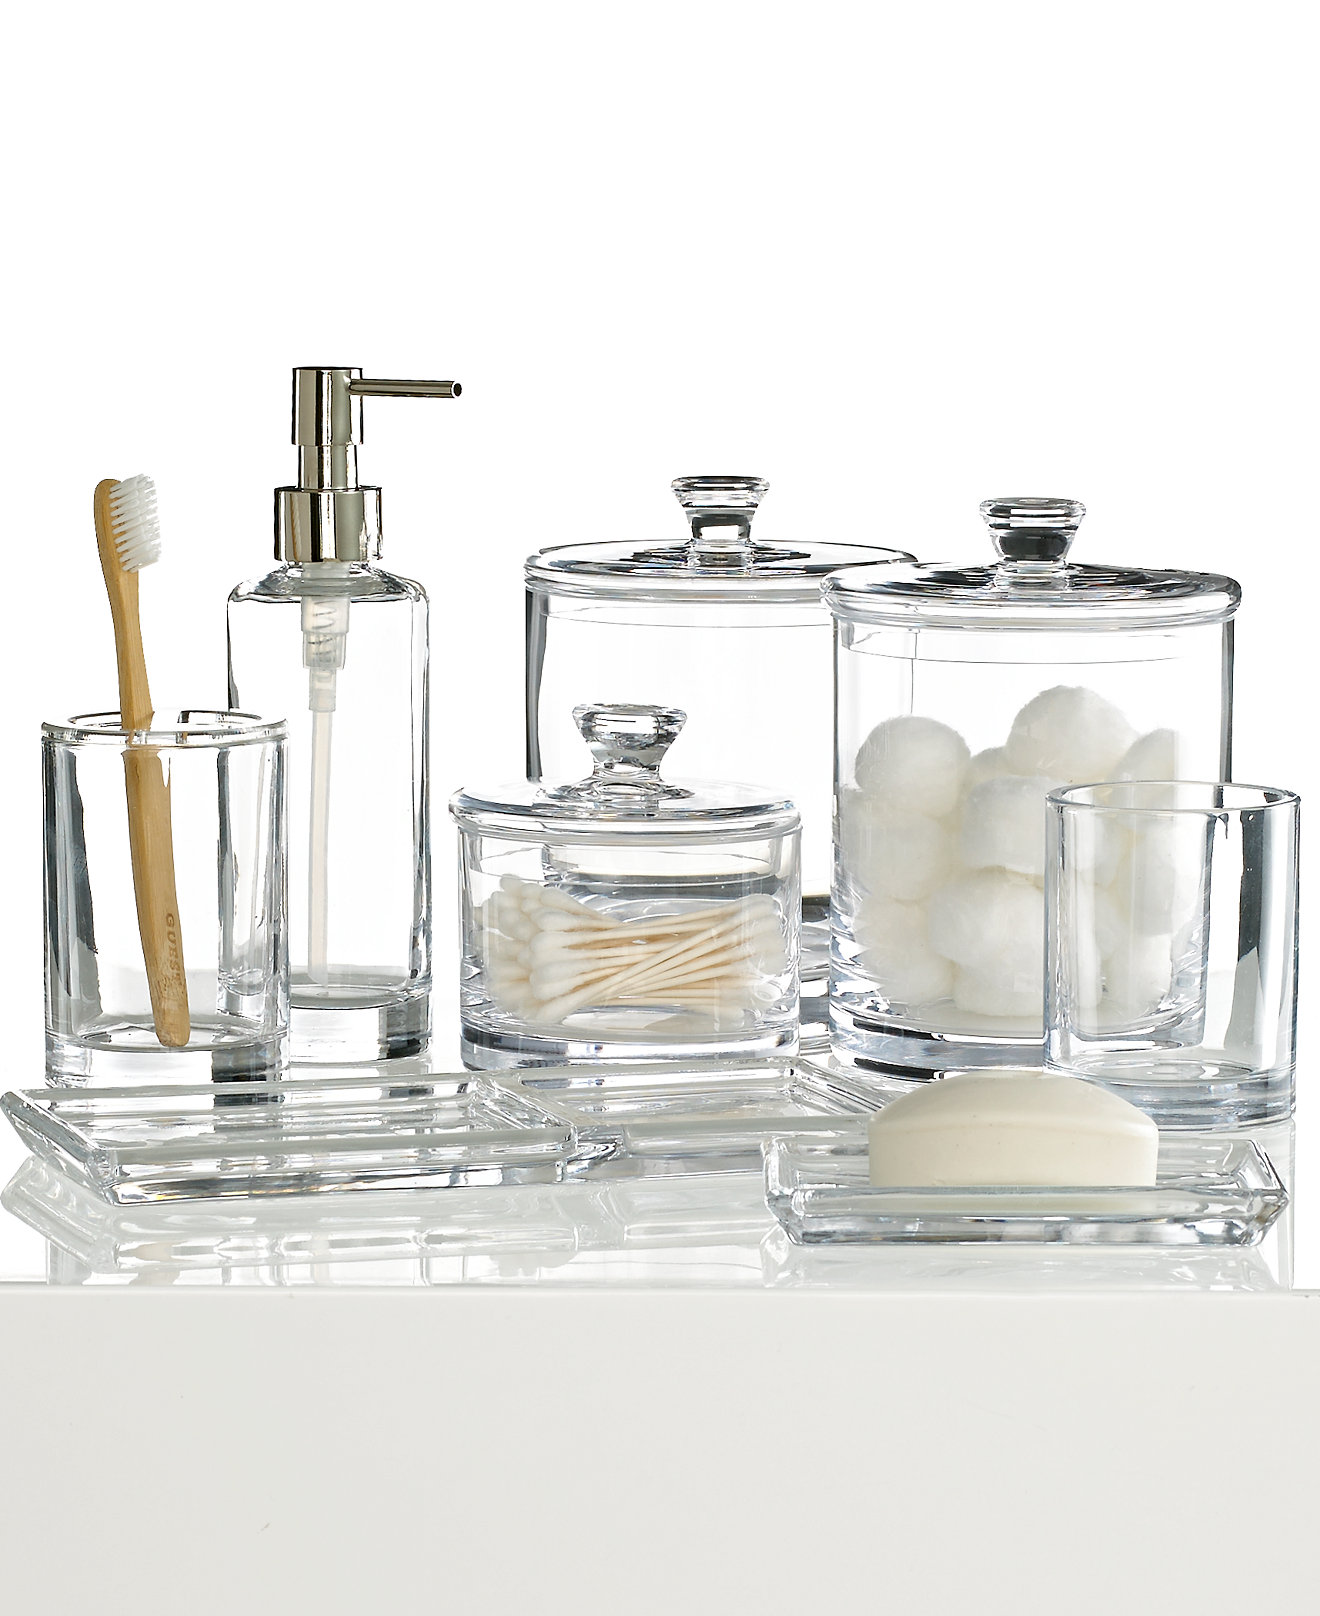 Bathroom accessories home for Bathroom accessories glass